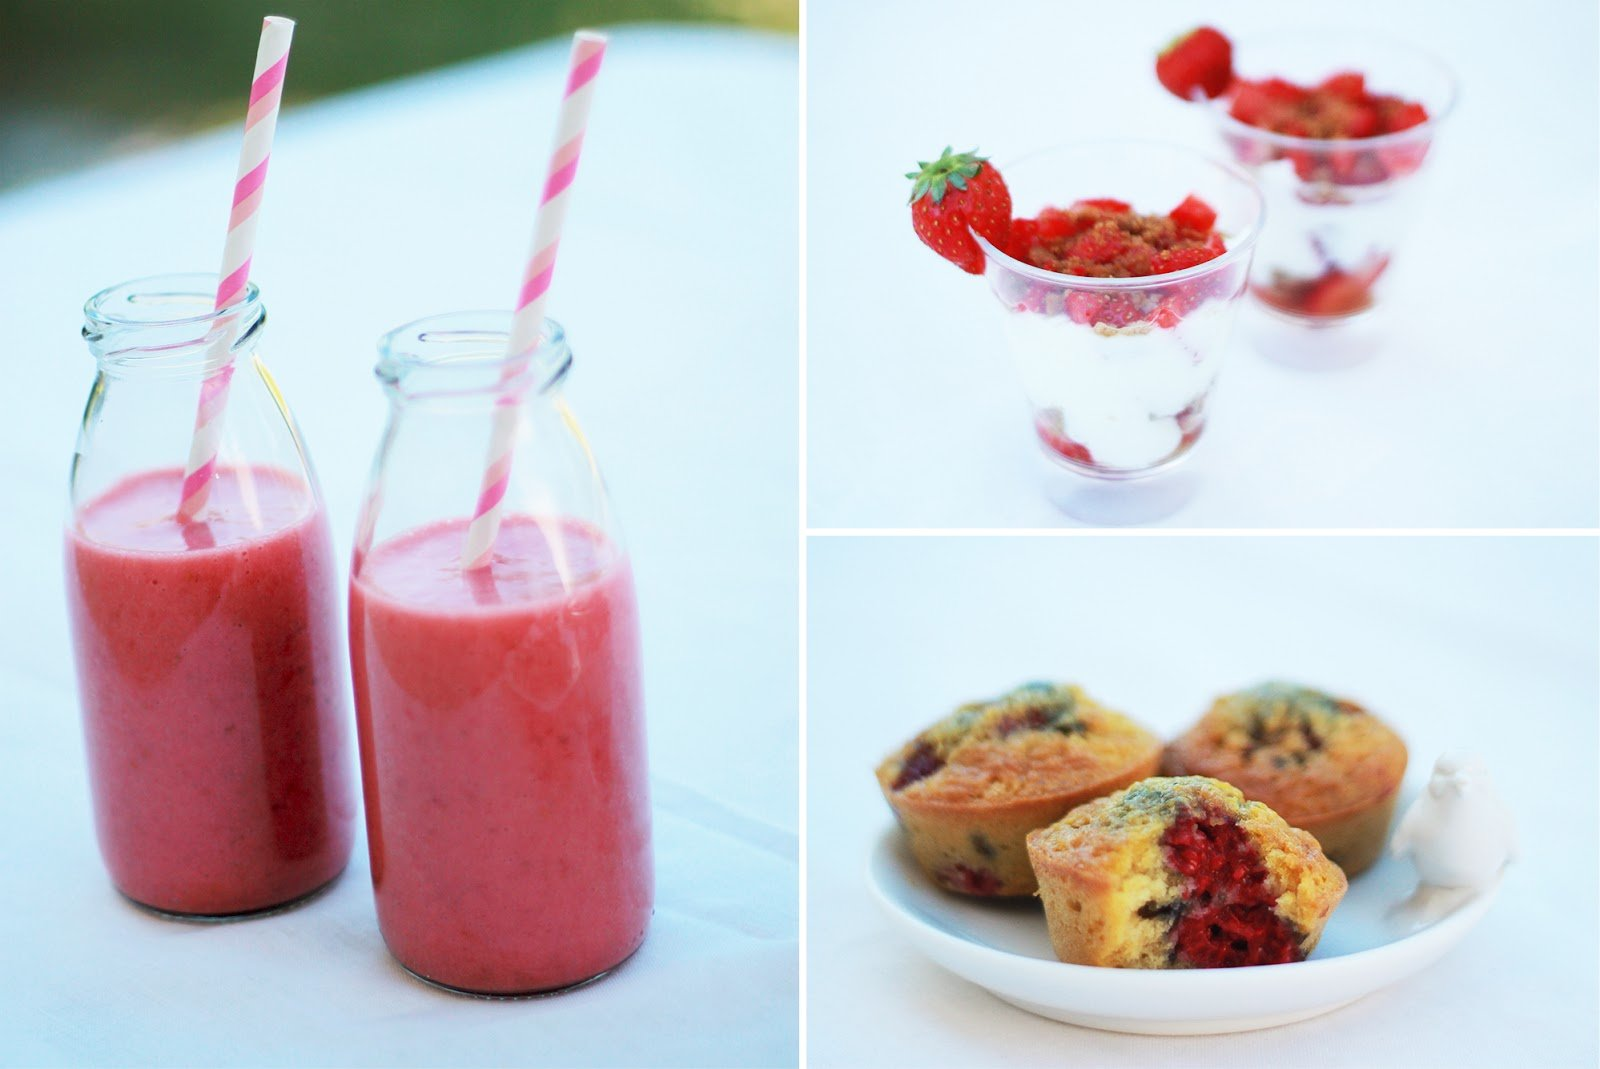 Smoothie fruits rouges, muffins framboise